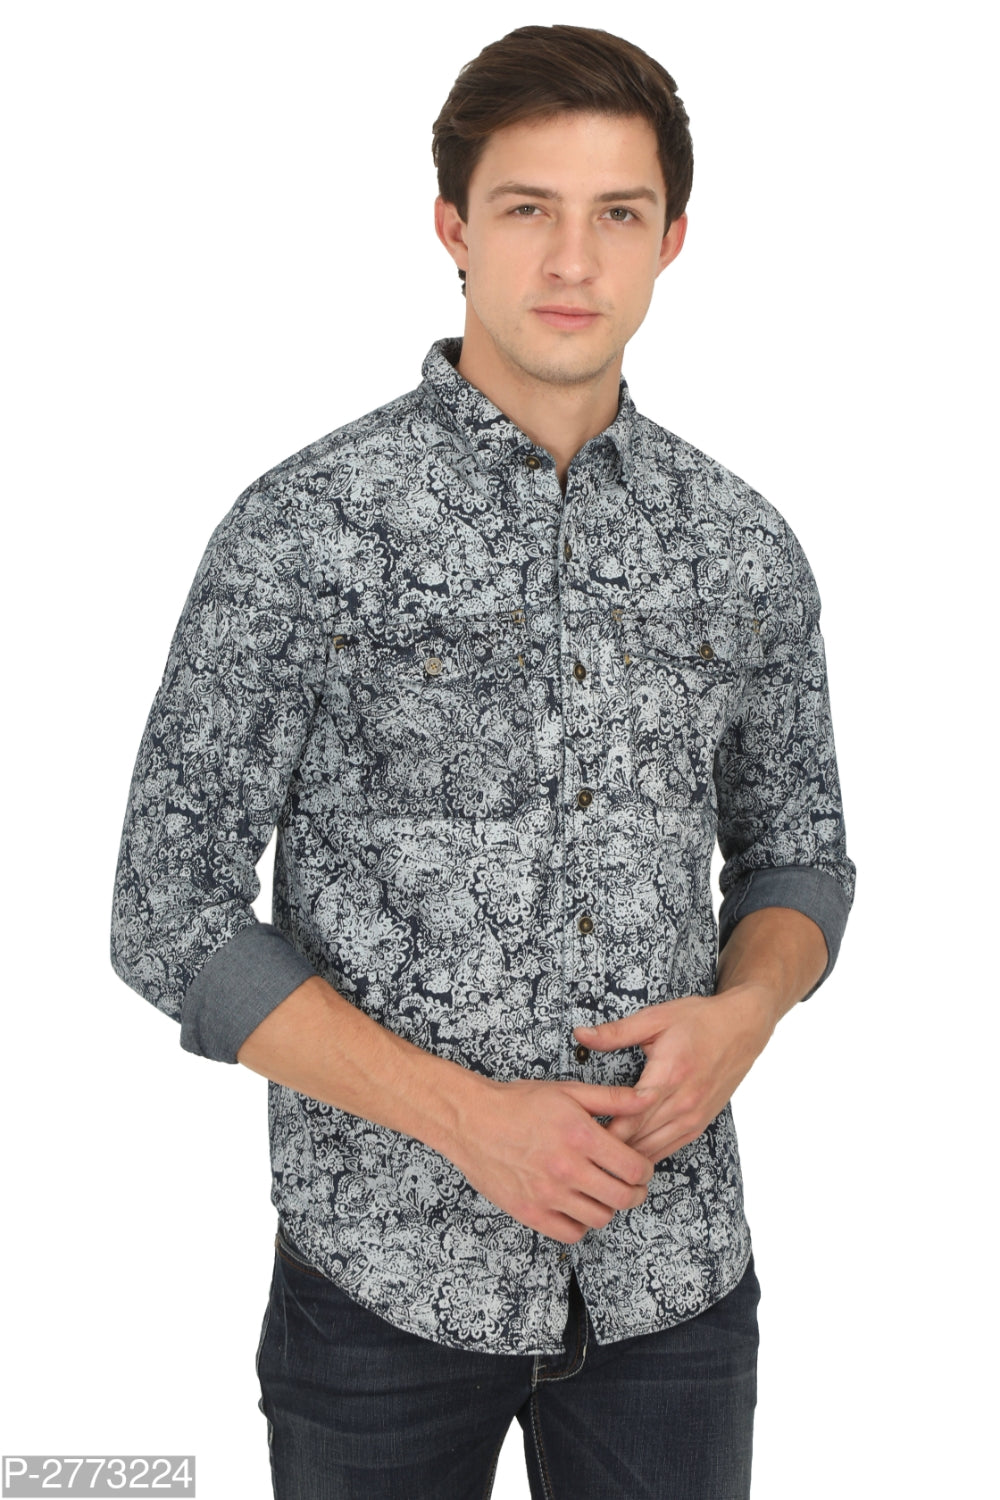 Carbon Grey Paisley Print Long Sleeve Shirt